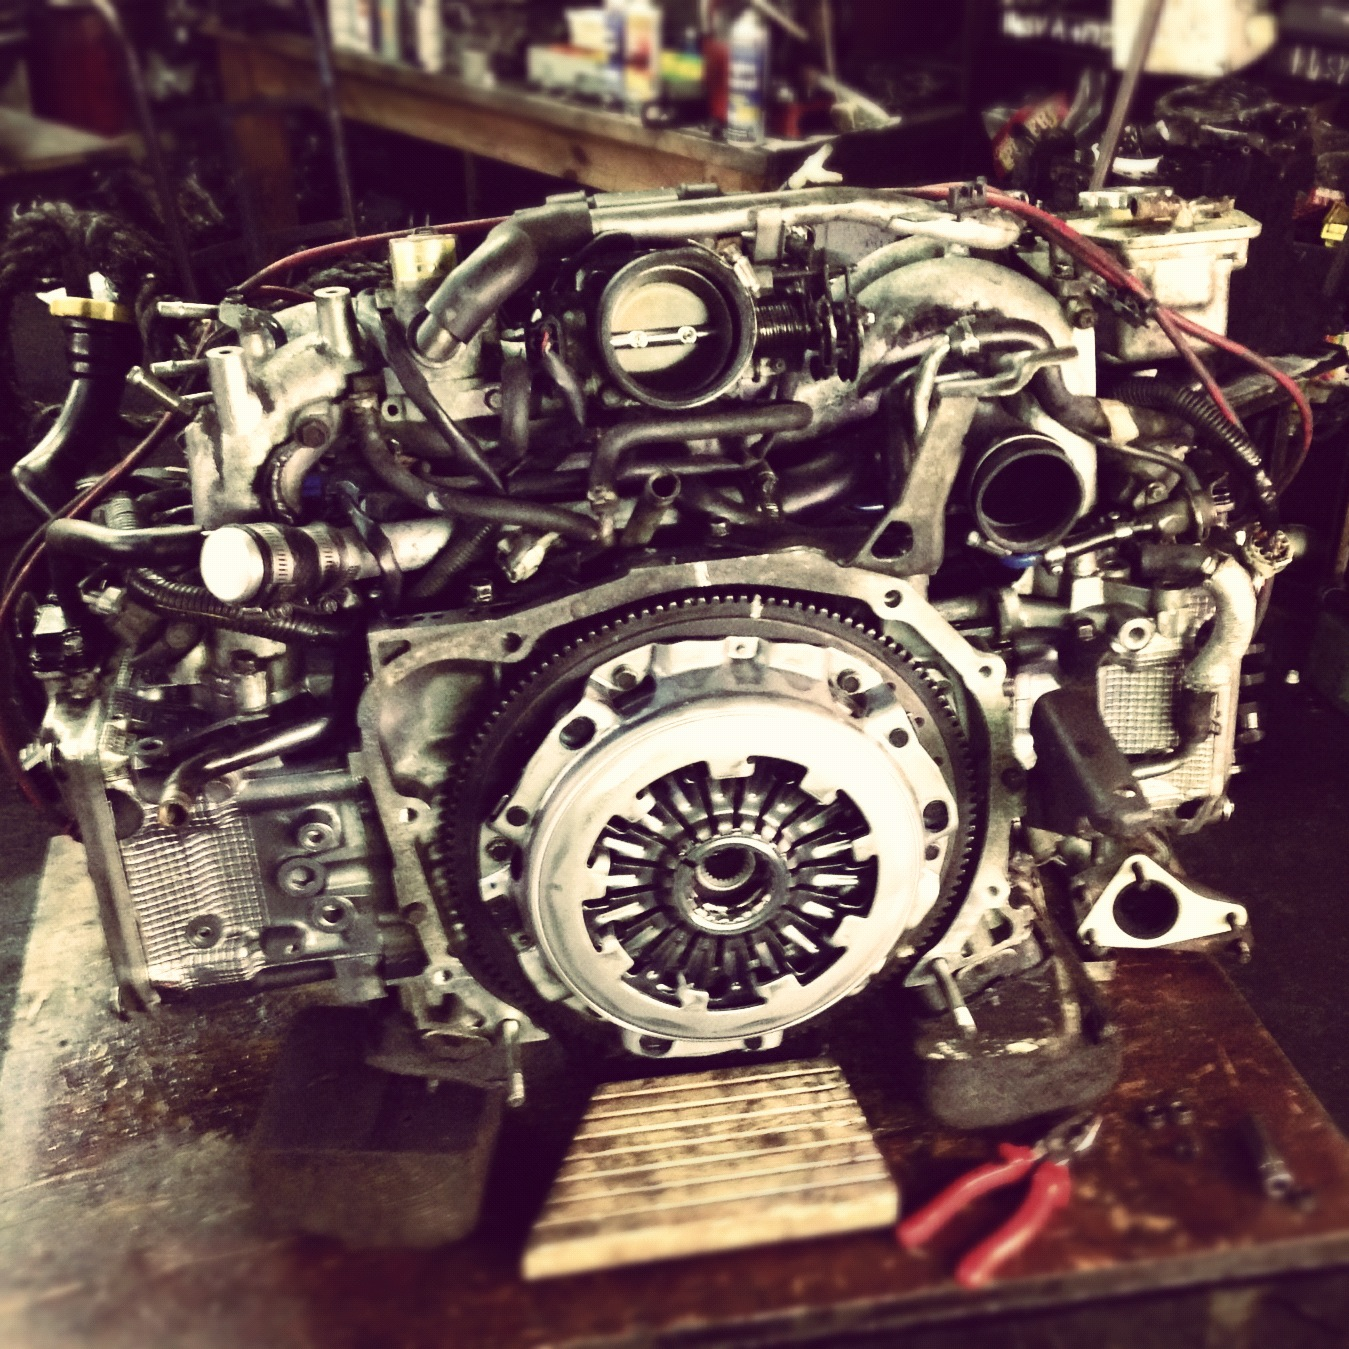 Subaru Impreza -Reconditioned Engine